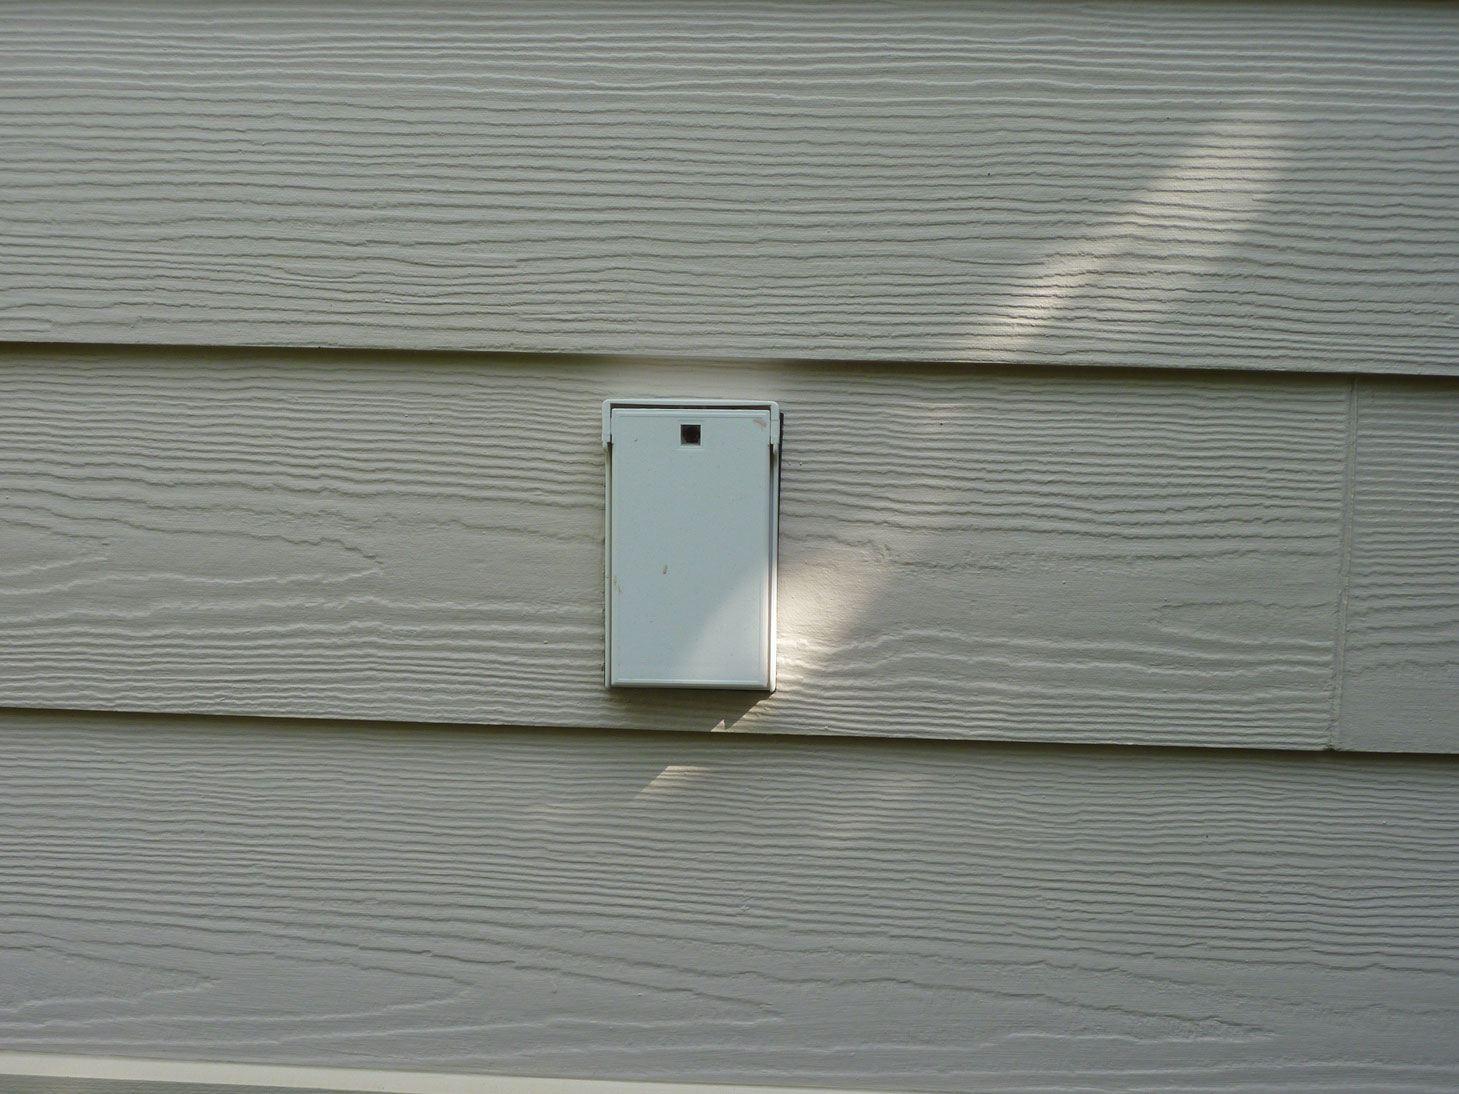 outdoor outlet box without water proof cover